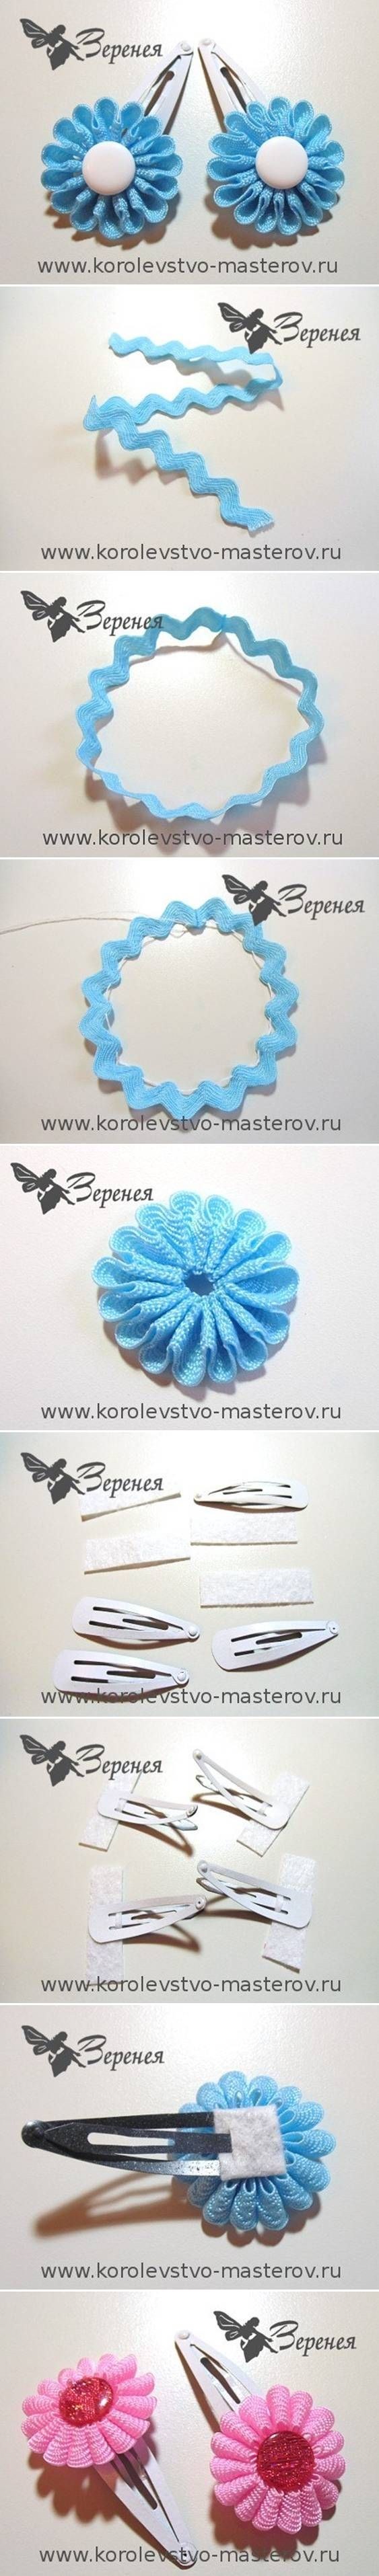 DIY Braid Flower via usefuldiy.com